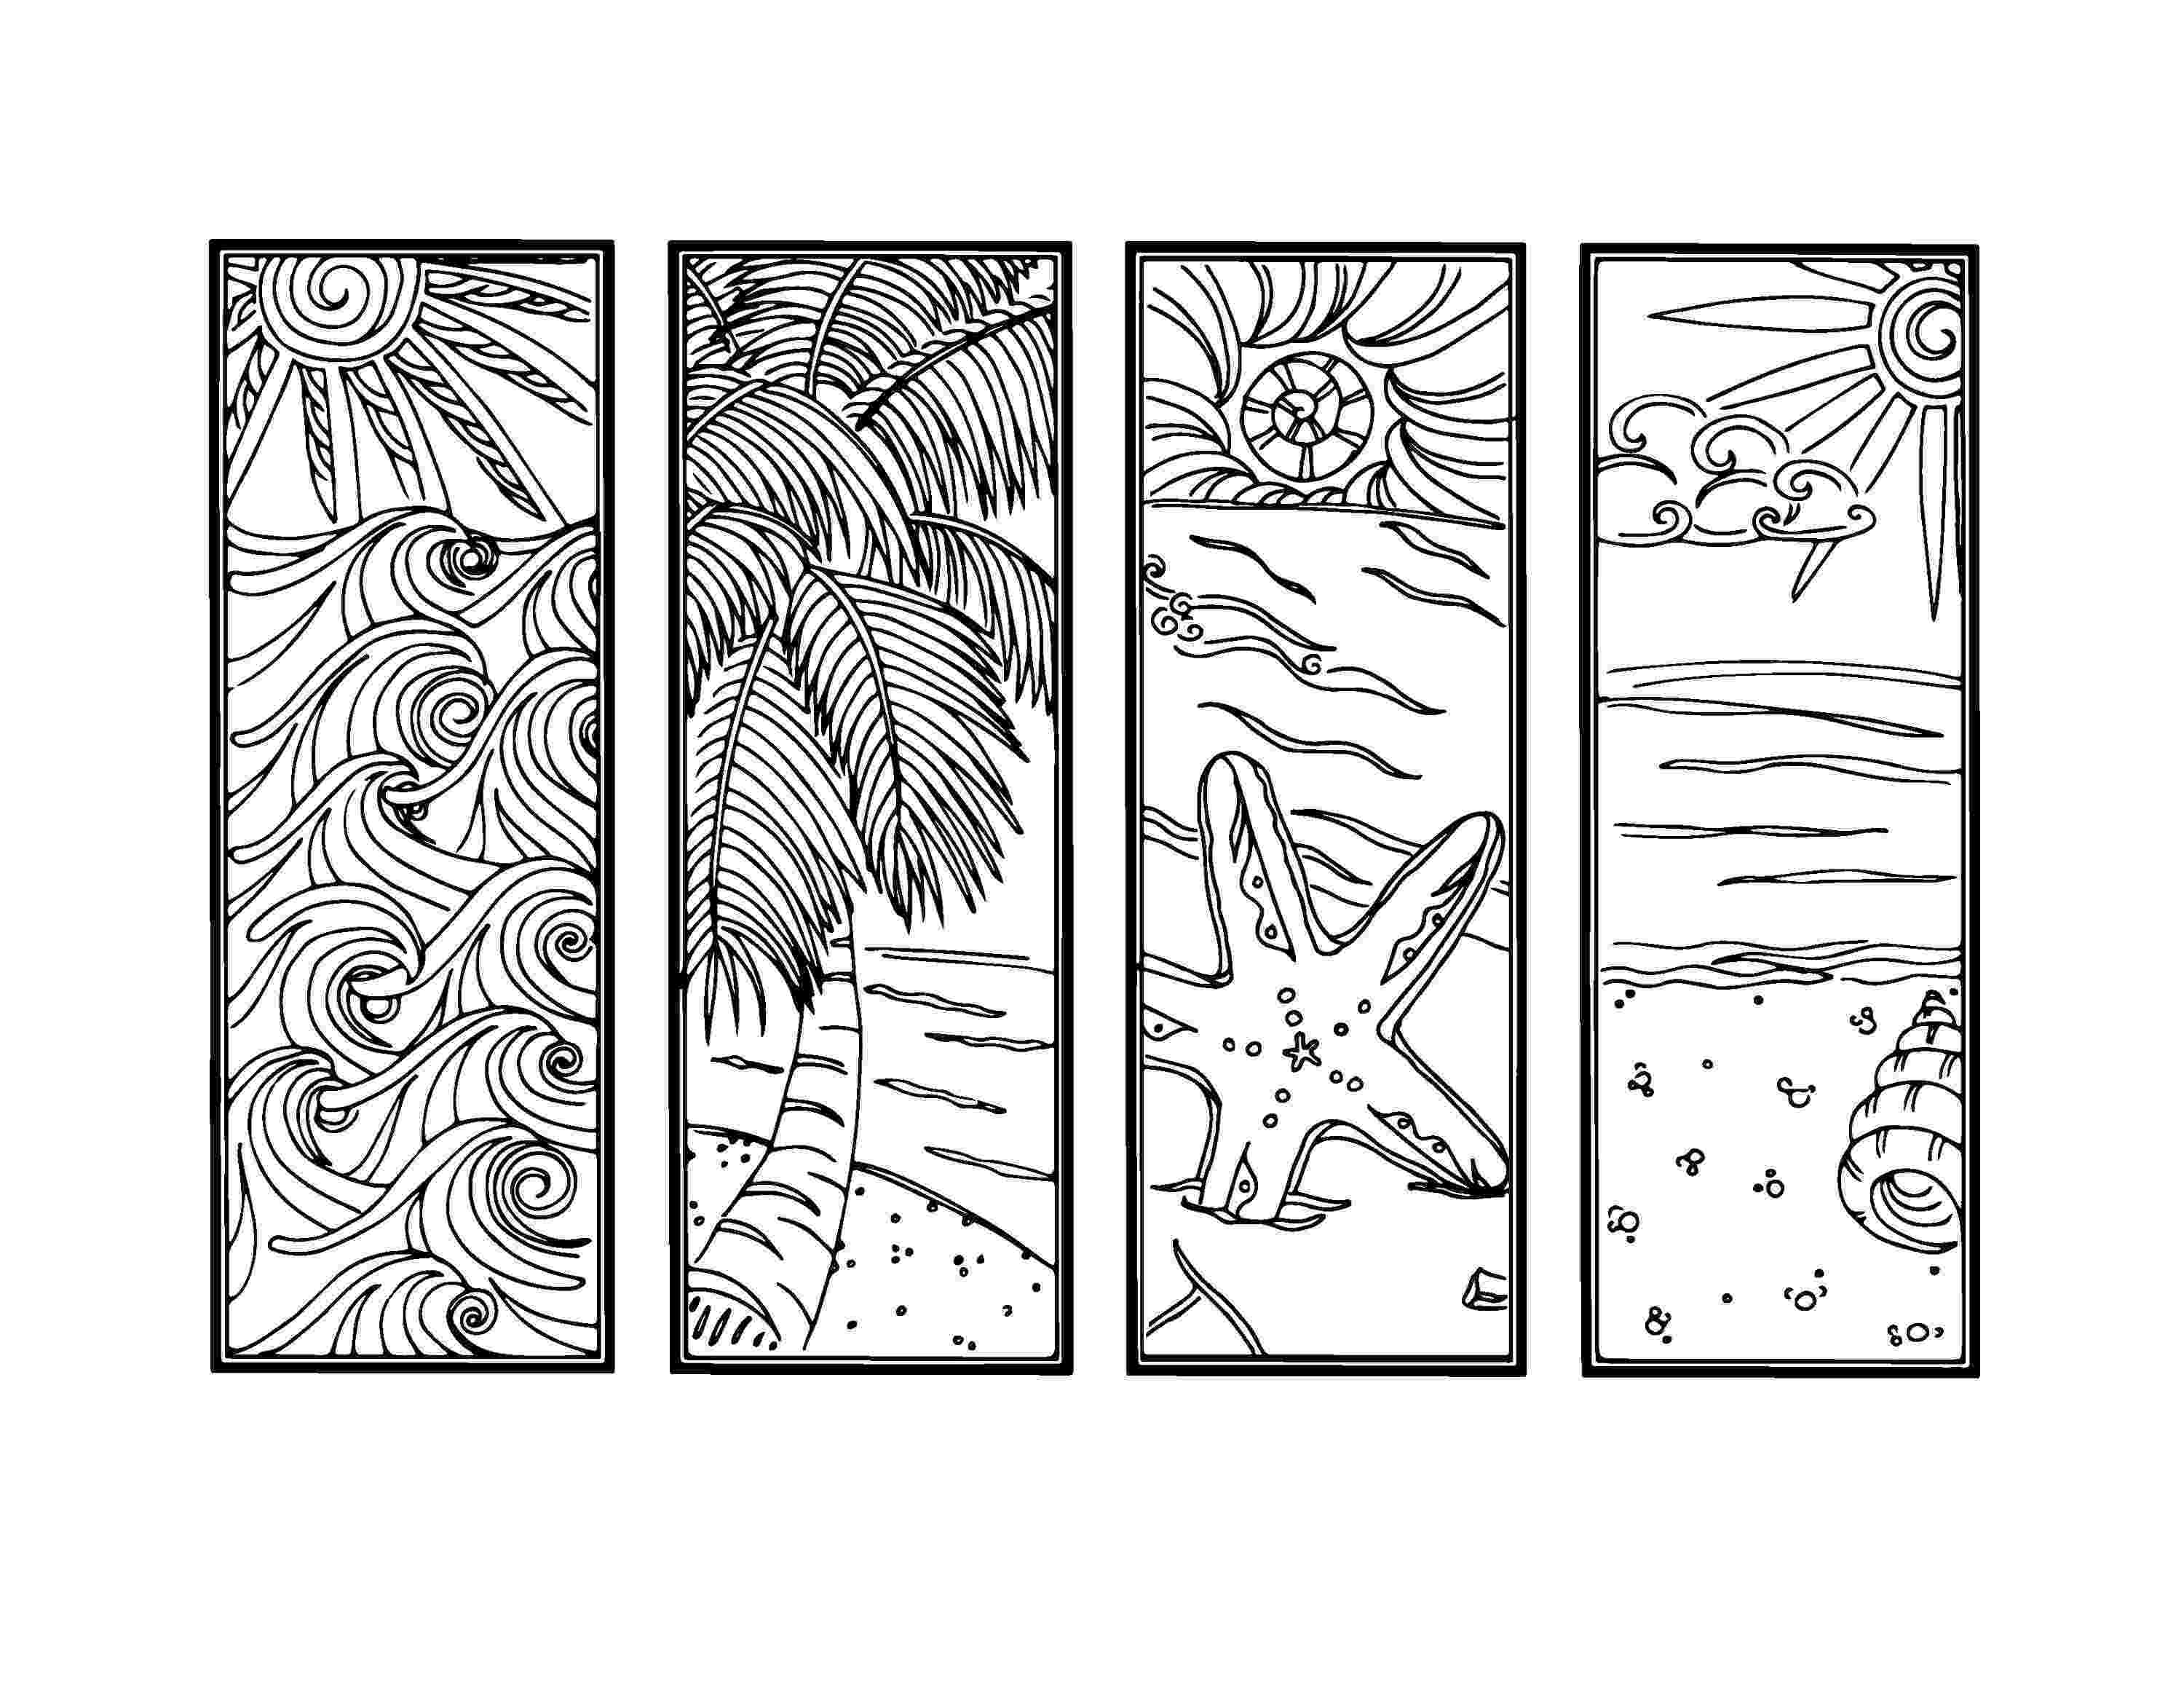 bookmarks coloring sheets diy bookmarks printable coloring page instant download bookmarks coloring sheets